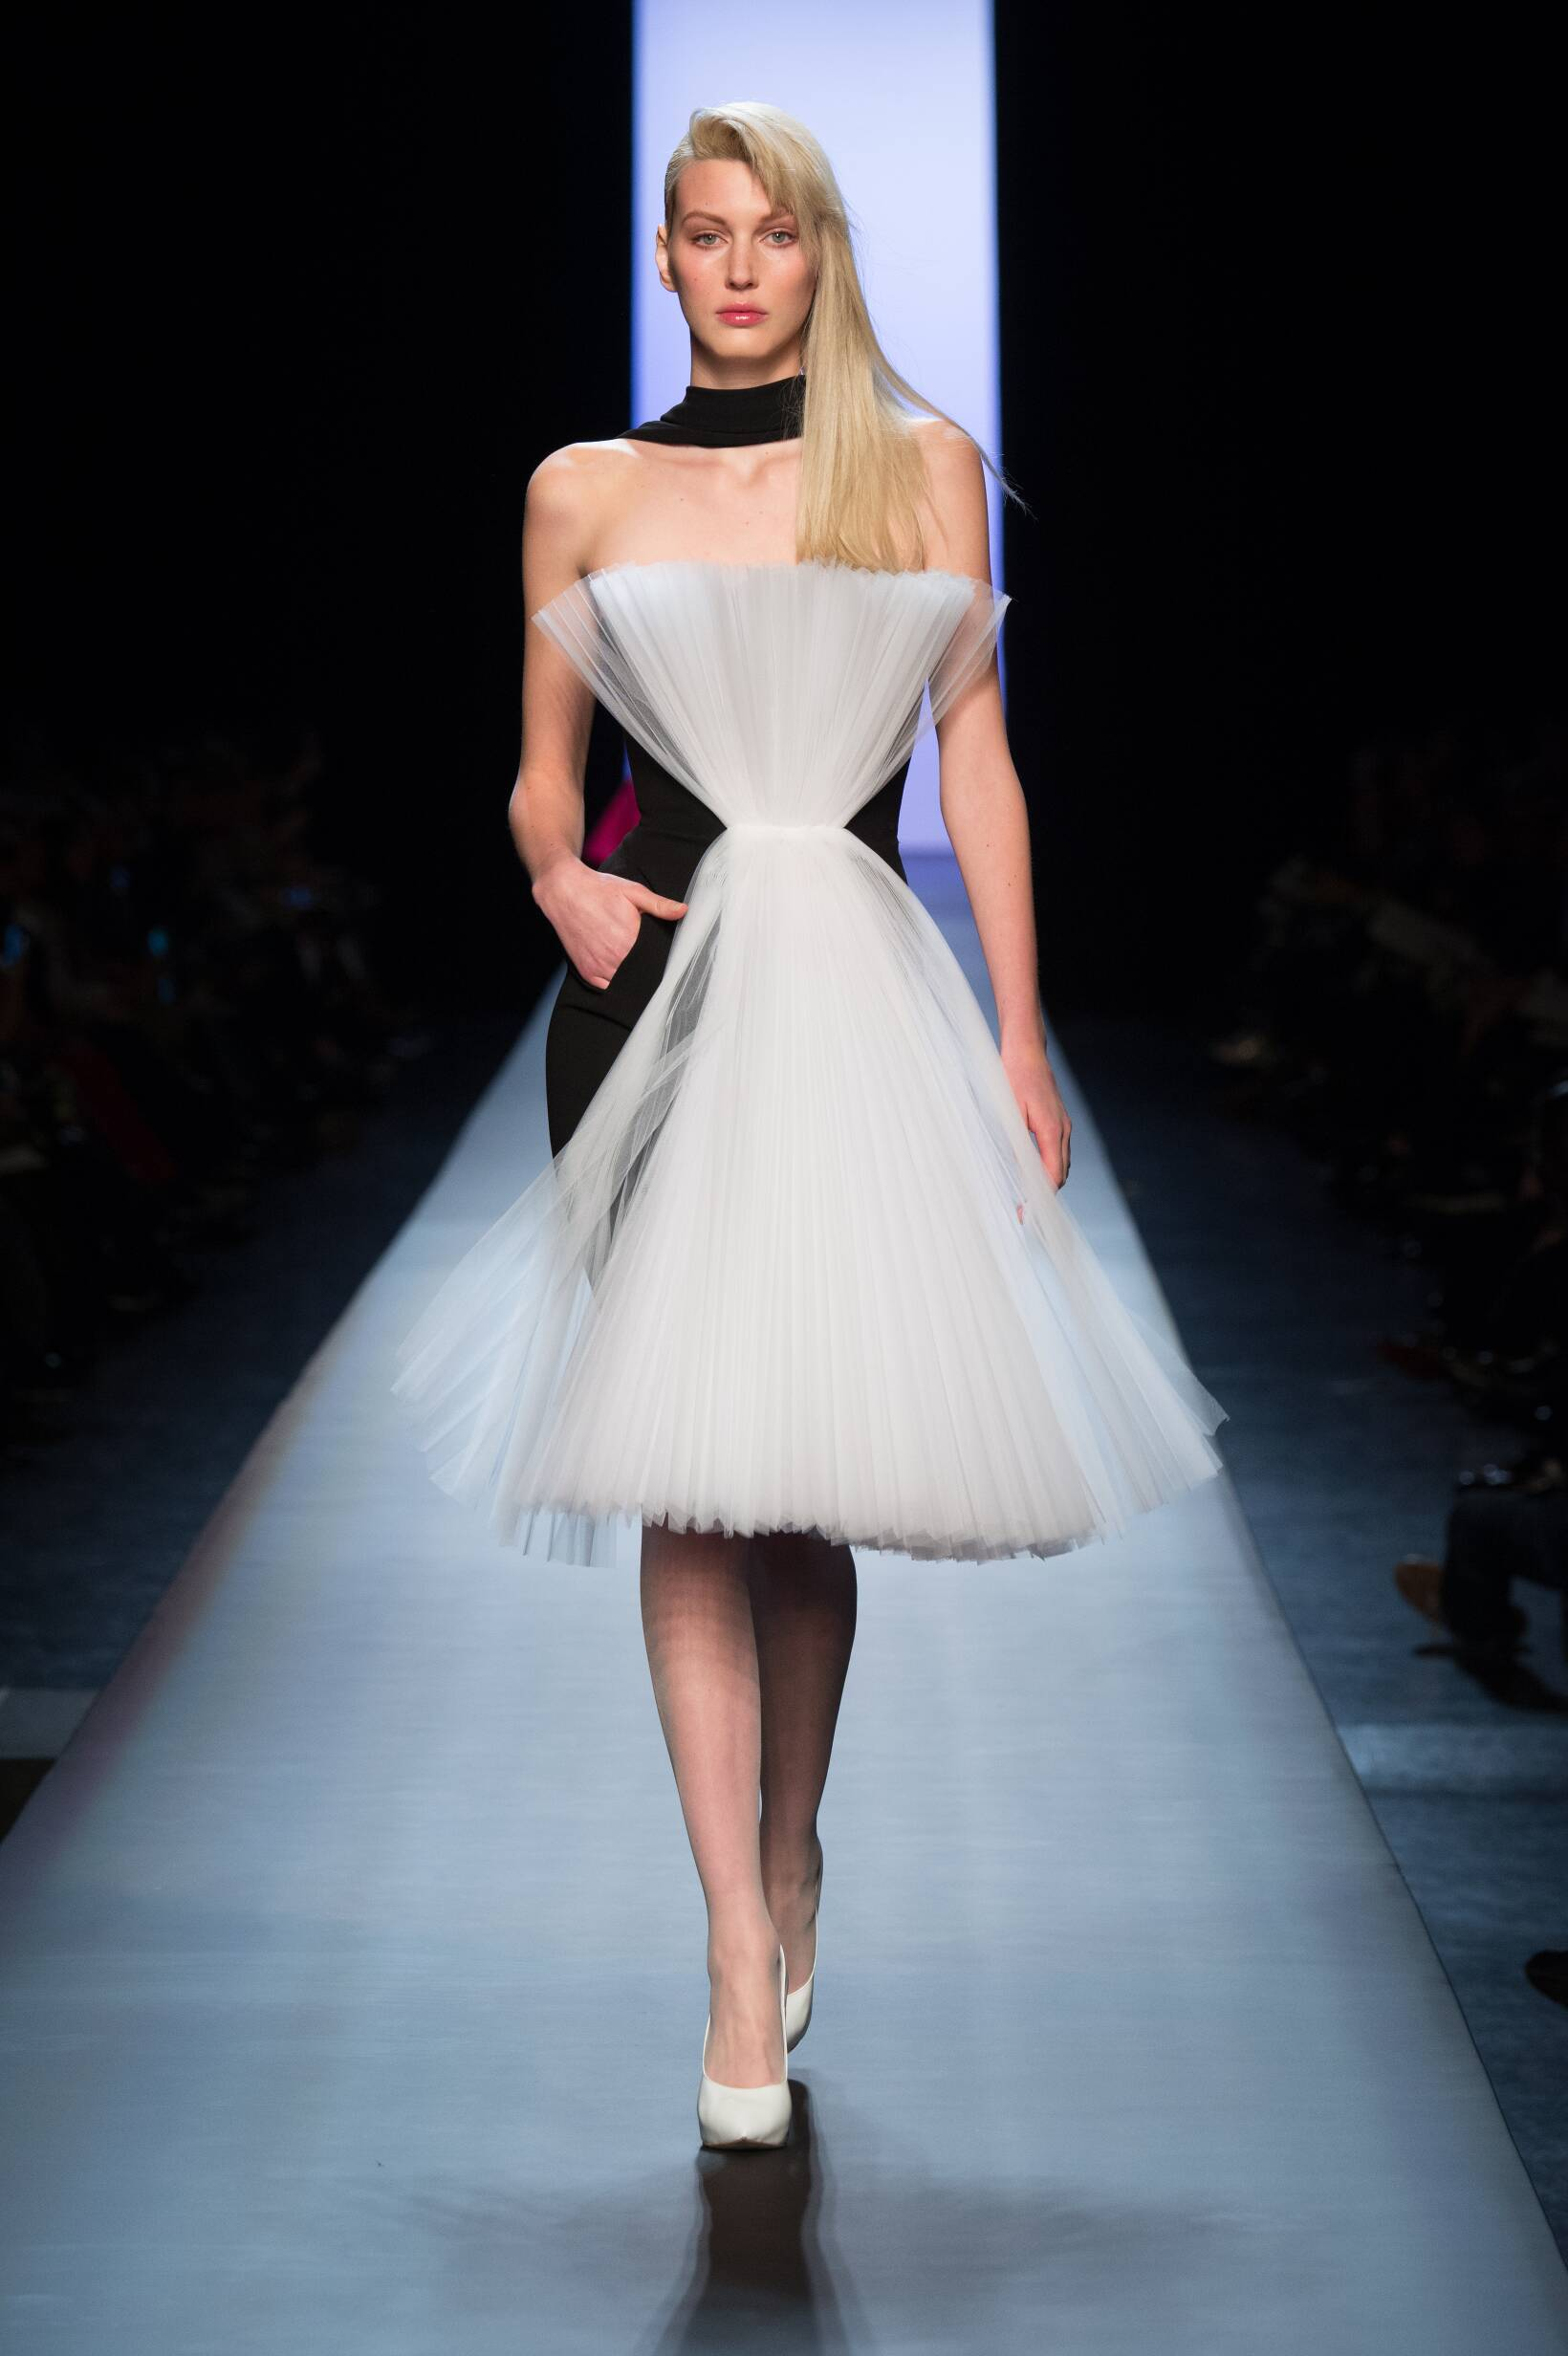 Jean Paul Gaultier Haute Couture Collection 2015